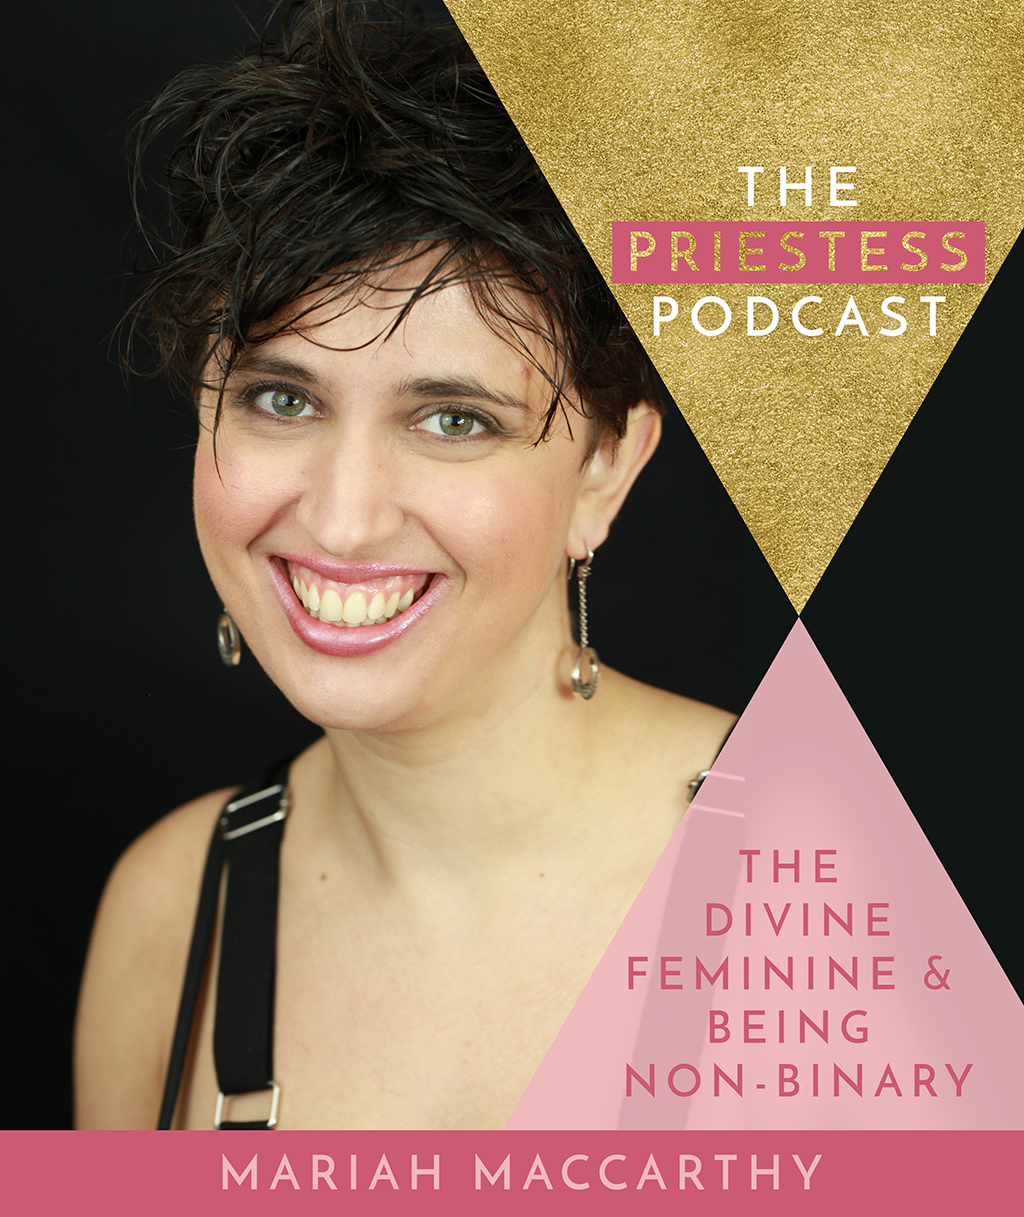 Mariah MacCarthy on The Divine Feminine & Being Non-Binary